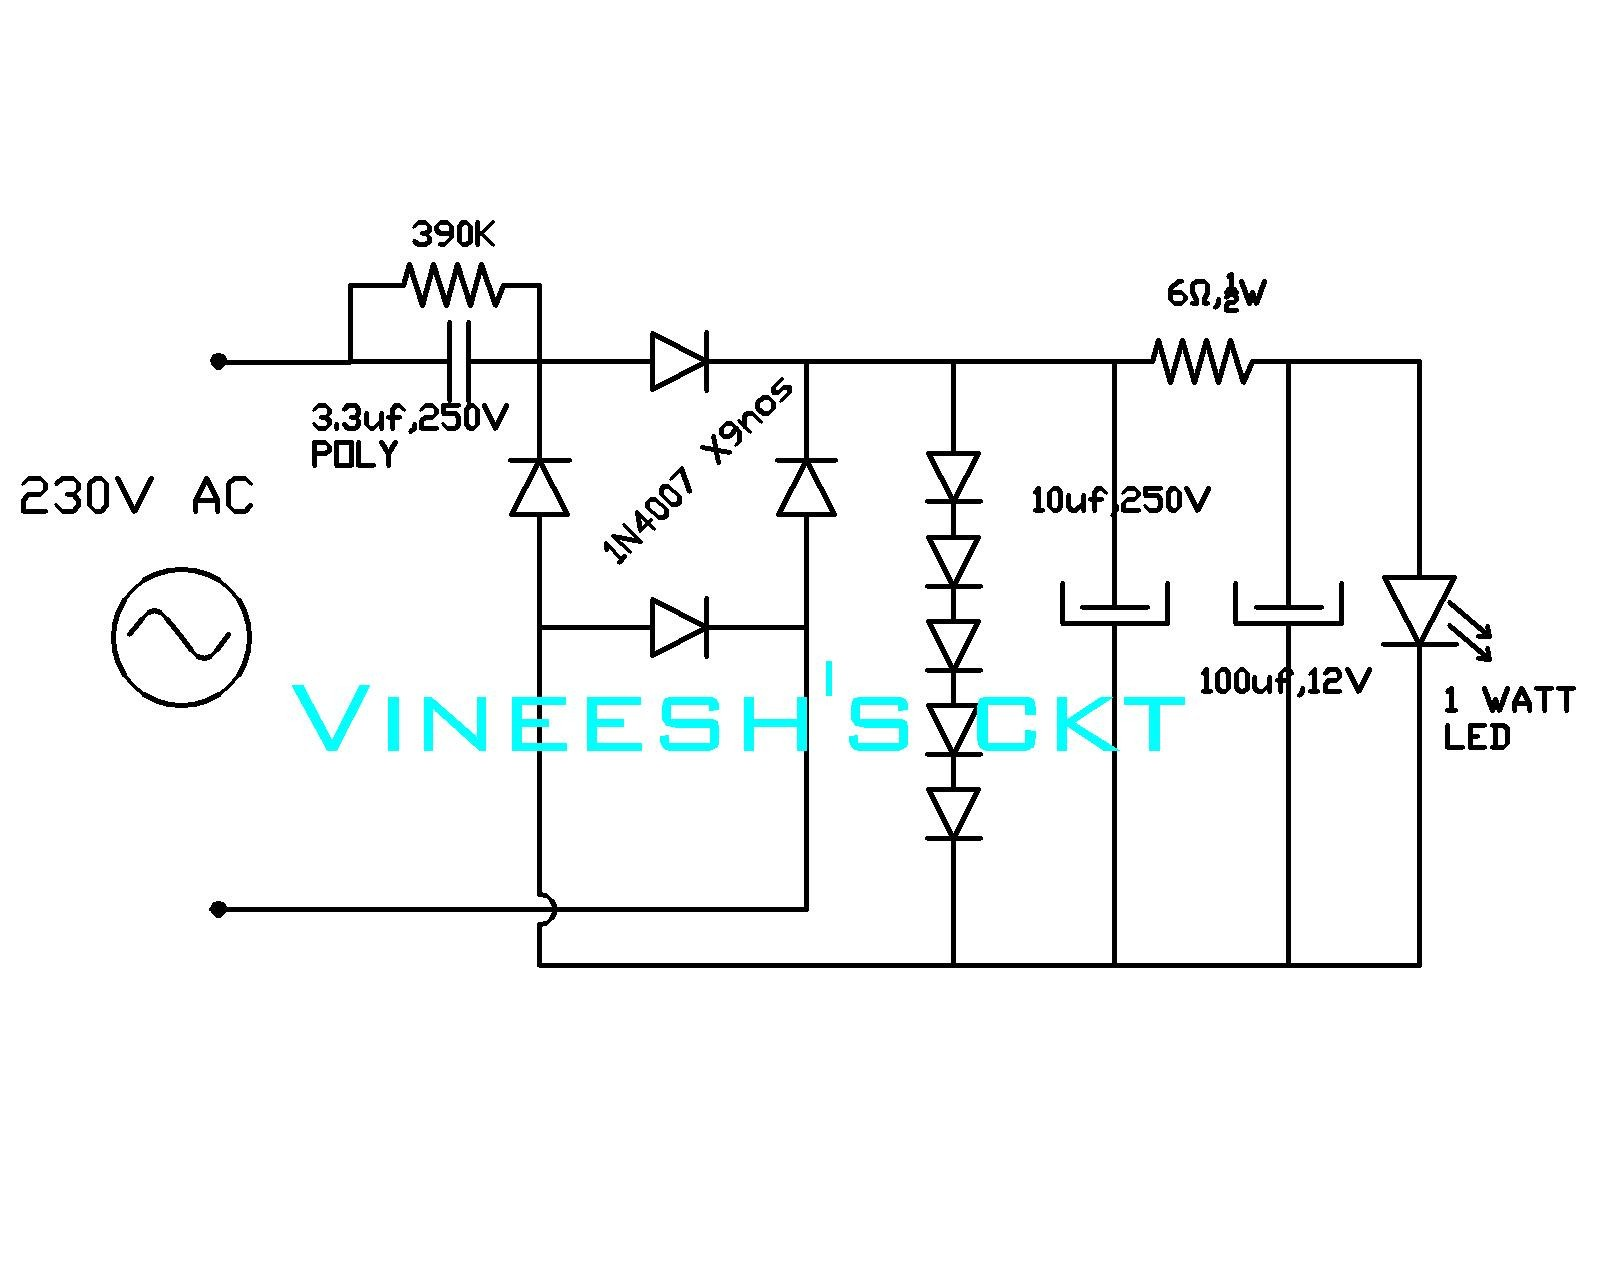 Street Light Wire Diagram Wiring Image Solar Circuit 230v Led Driver Zen Electrical